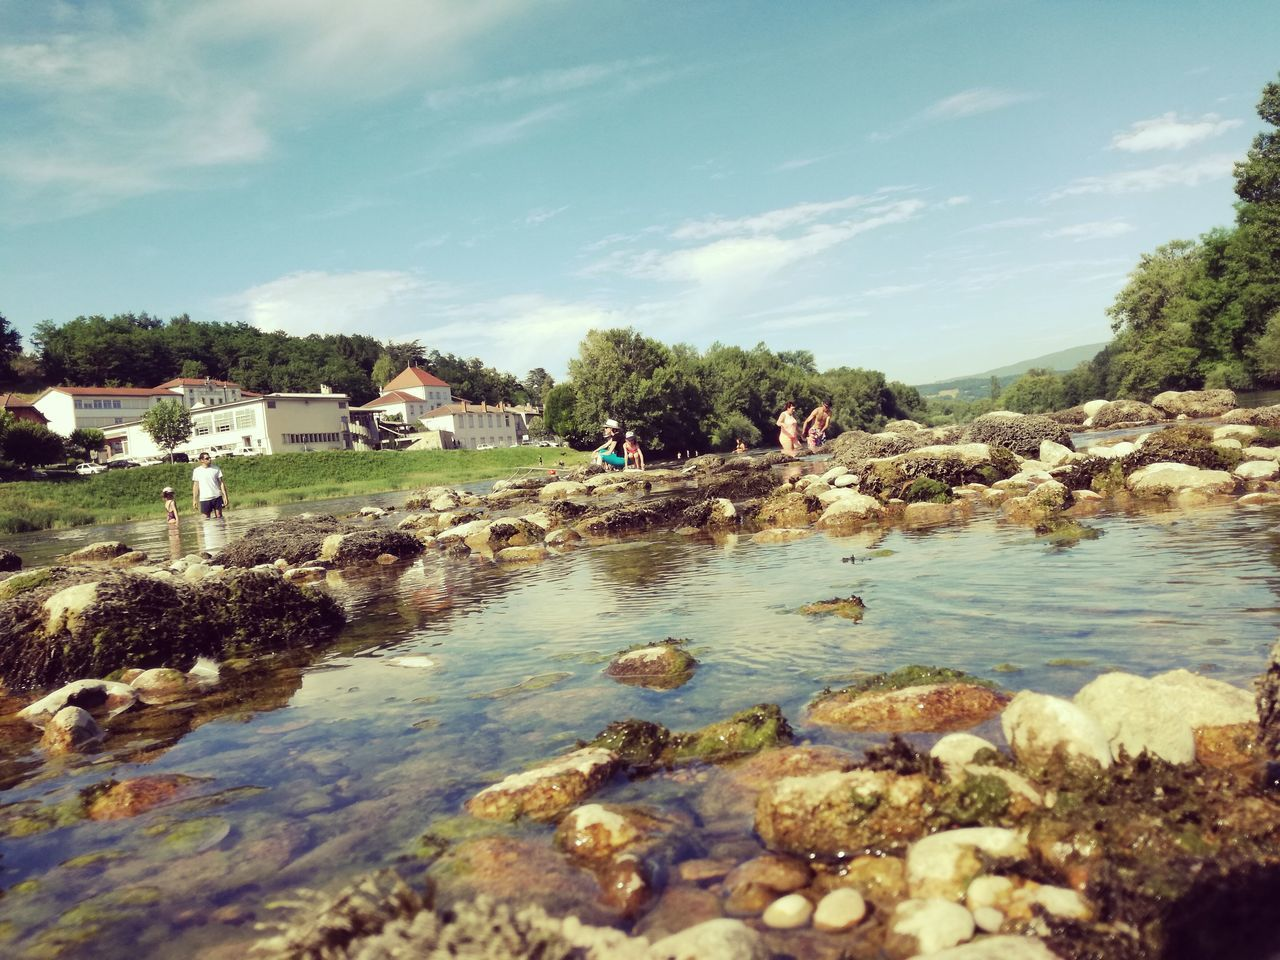 water, tree, sky, outdoors, day, large group of people, nature, river, beauty in nature, built structure, real people, architecture, people